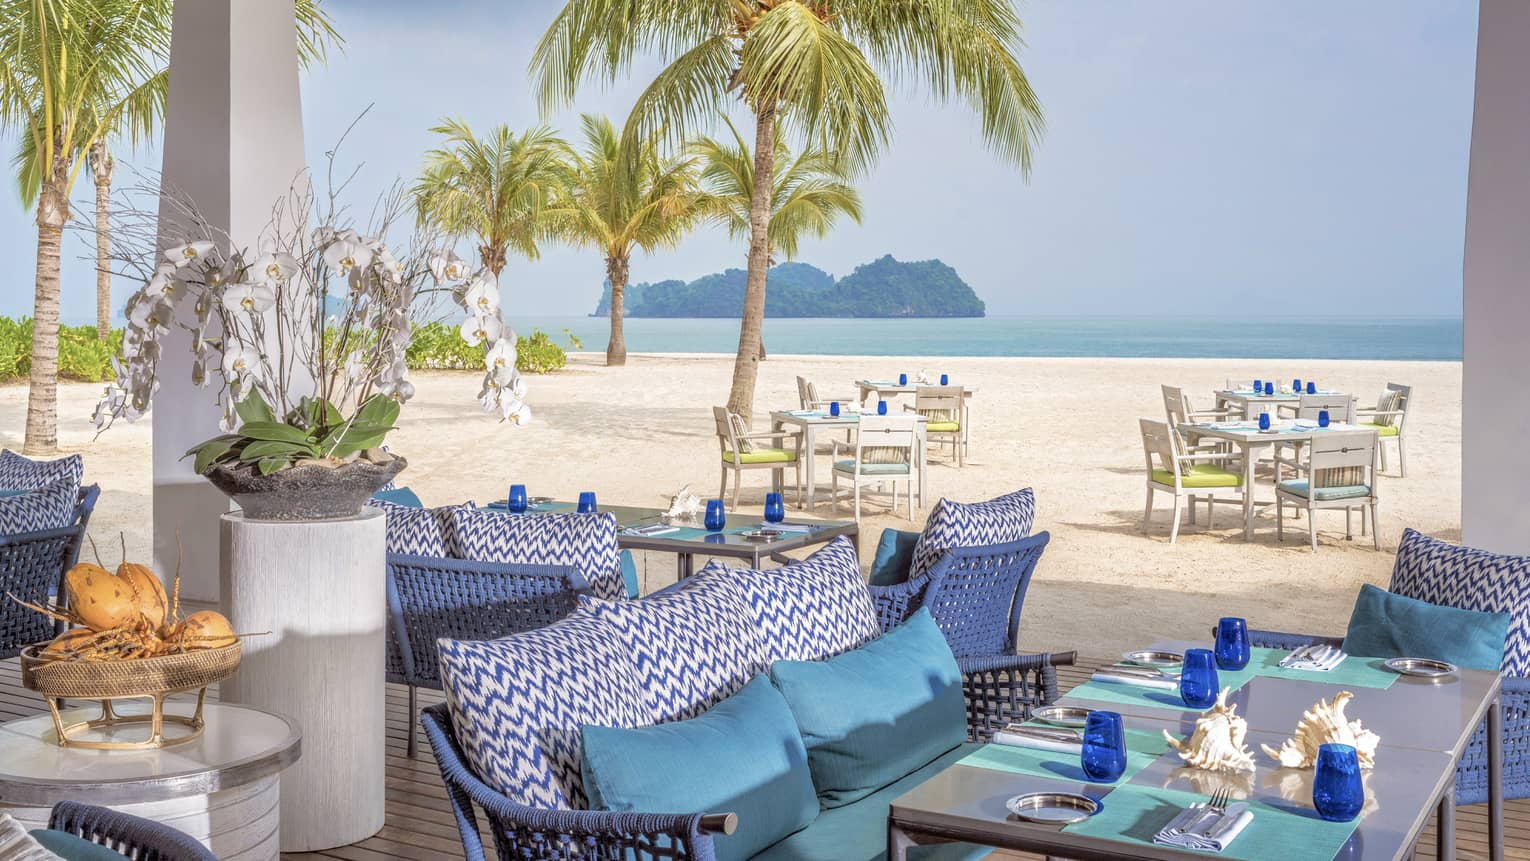 Terrace of ocean-view restaurant, blue cushions on sofa, turquoise place mats and blue glasses on table